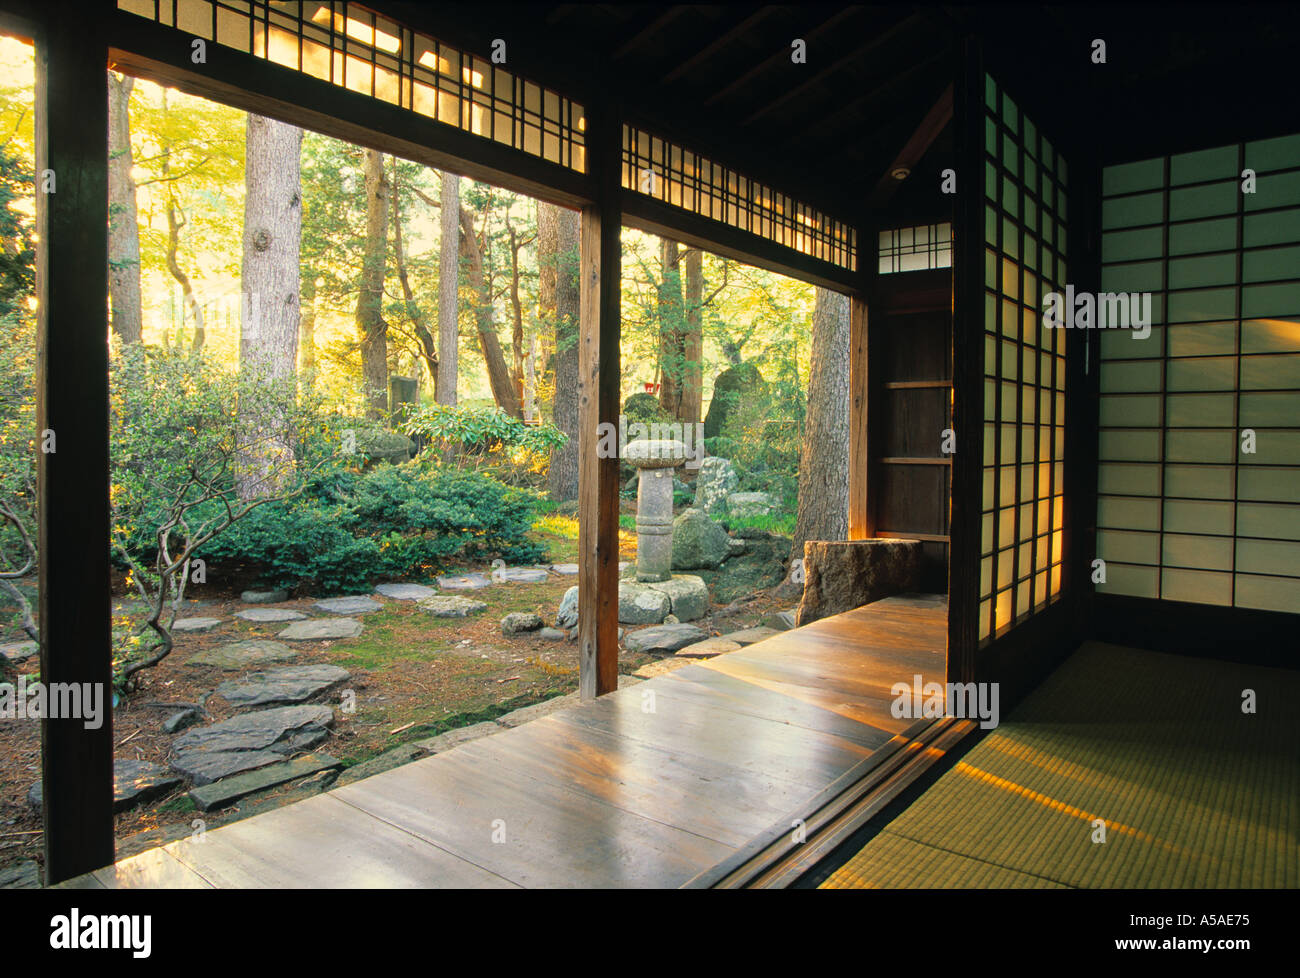 Koto, Daitokuji Temple, Kyoto, Japan - Stock Image